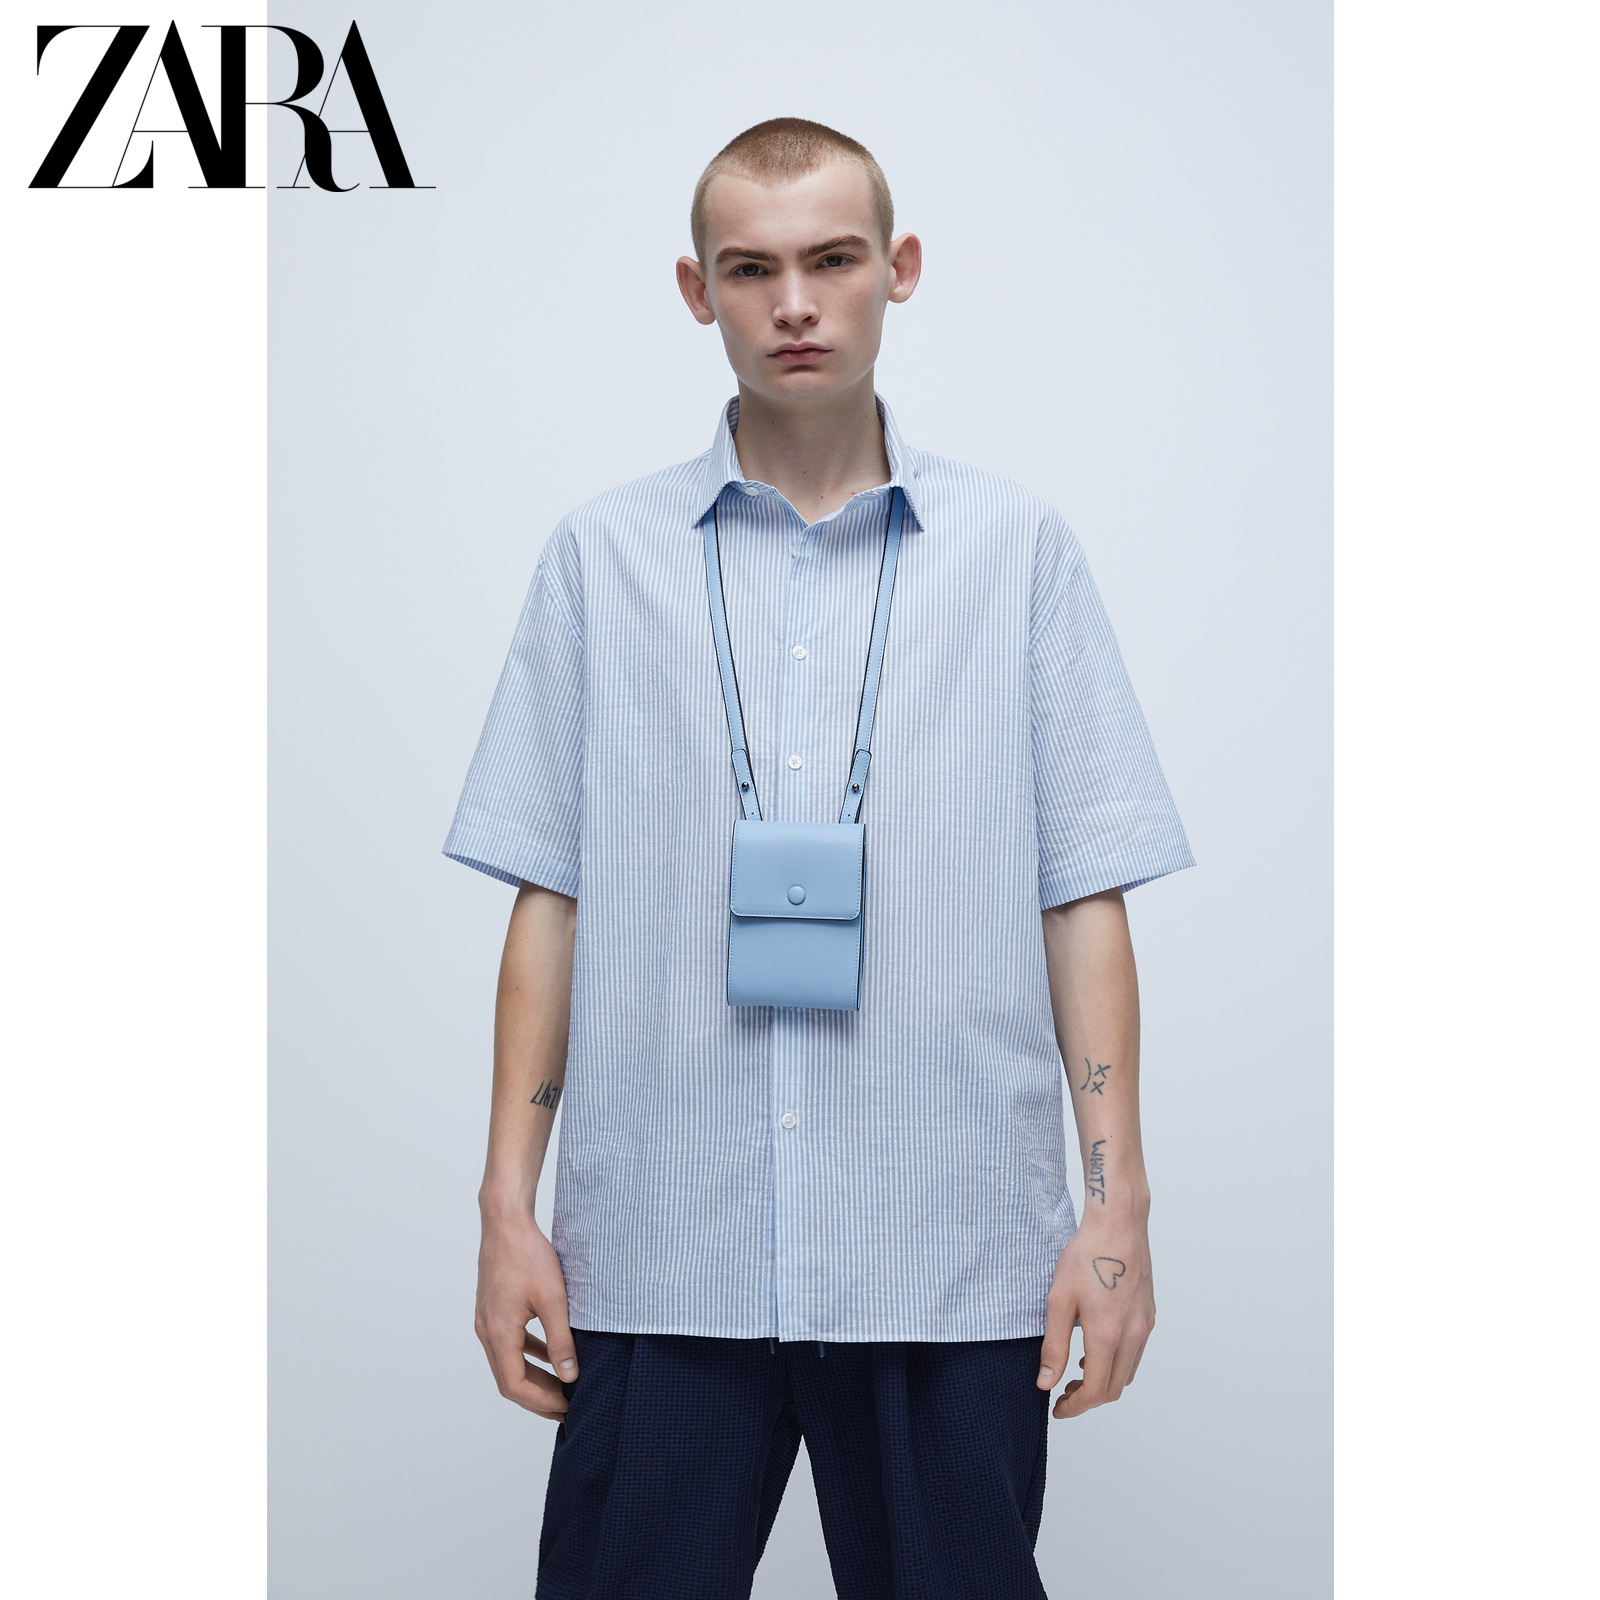 Zara new men's stripe seersucker short sleeve shirt 04323415403